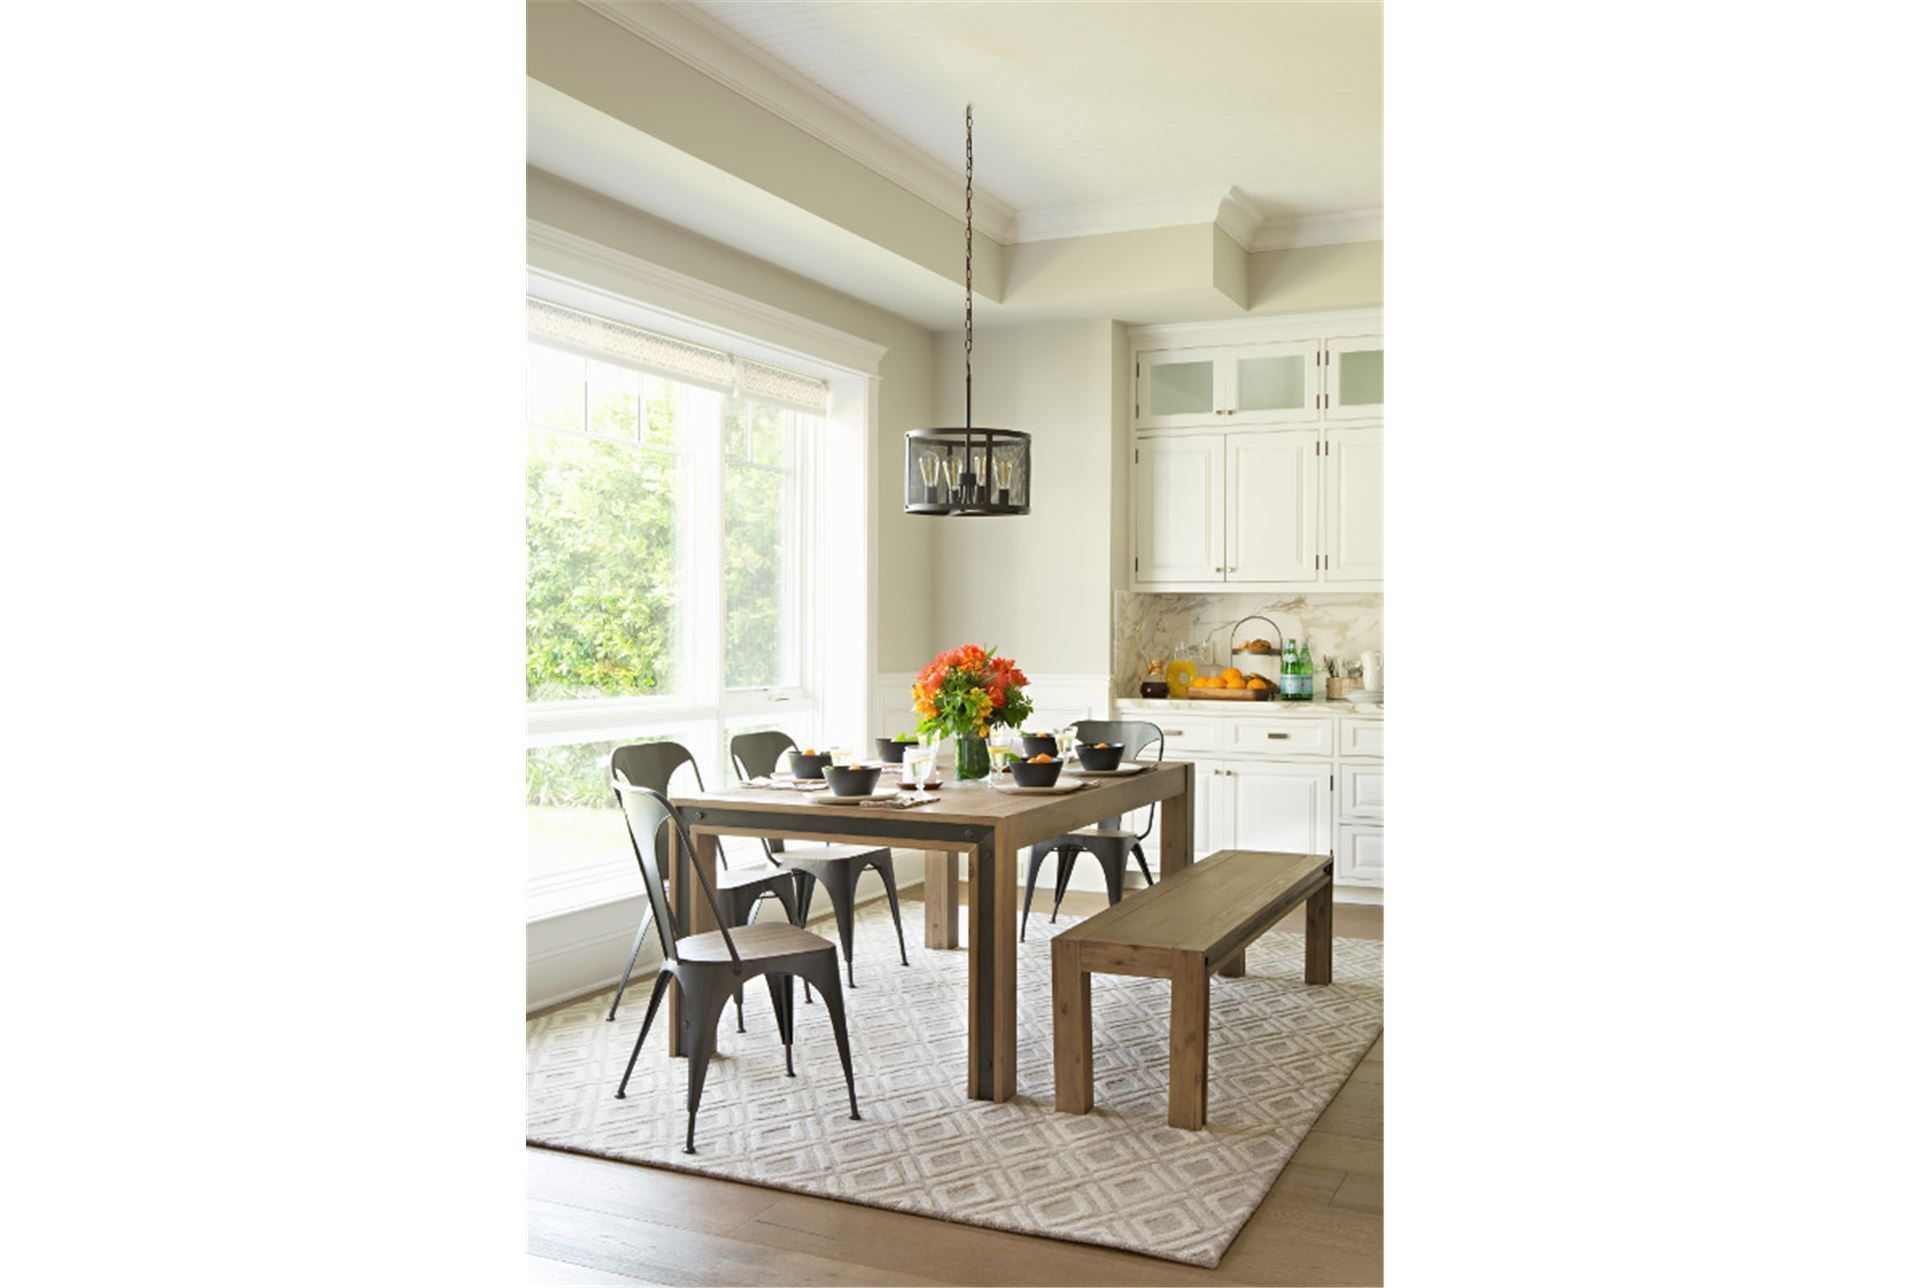 Amos 6 Piece Extension Dining Set, Grey | Dining sets, Living spaces ...